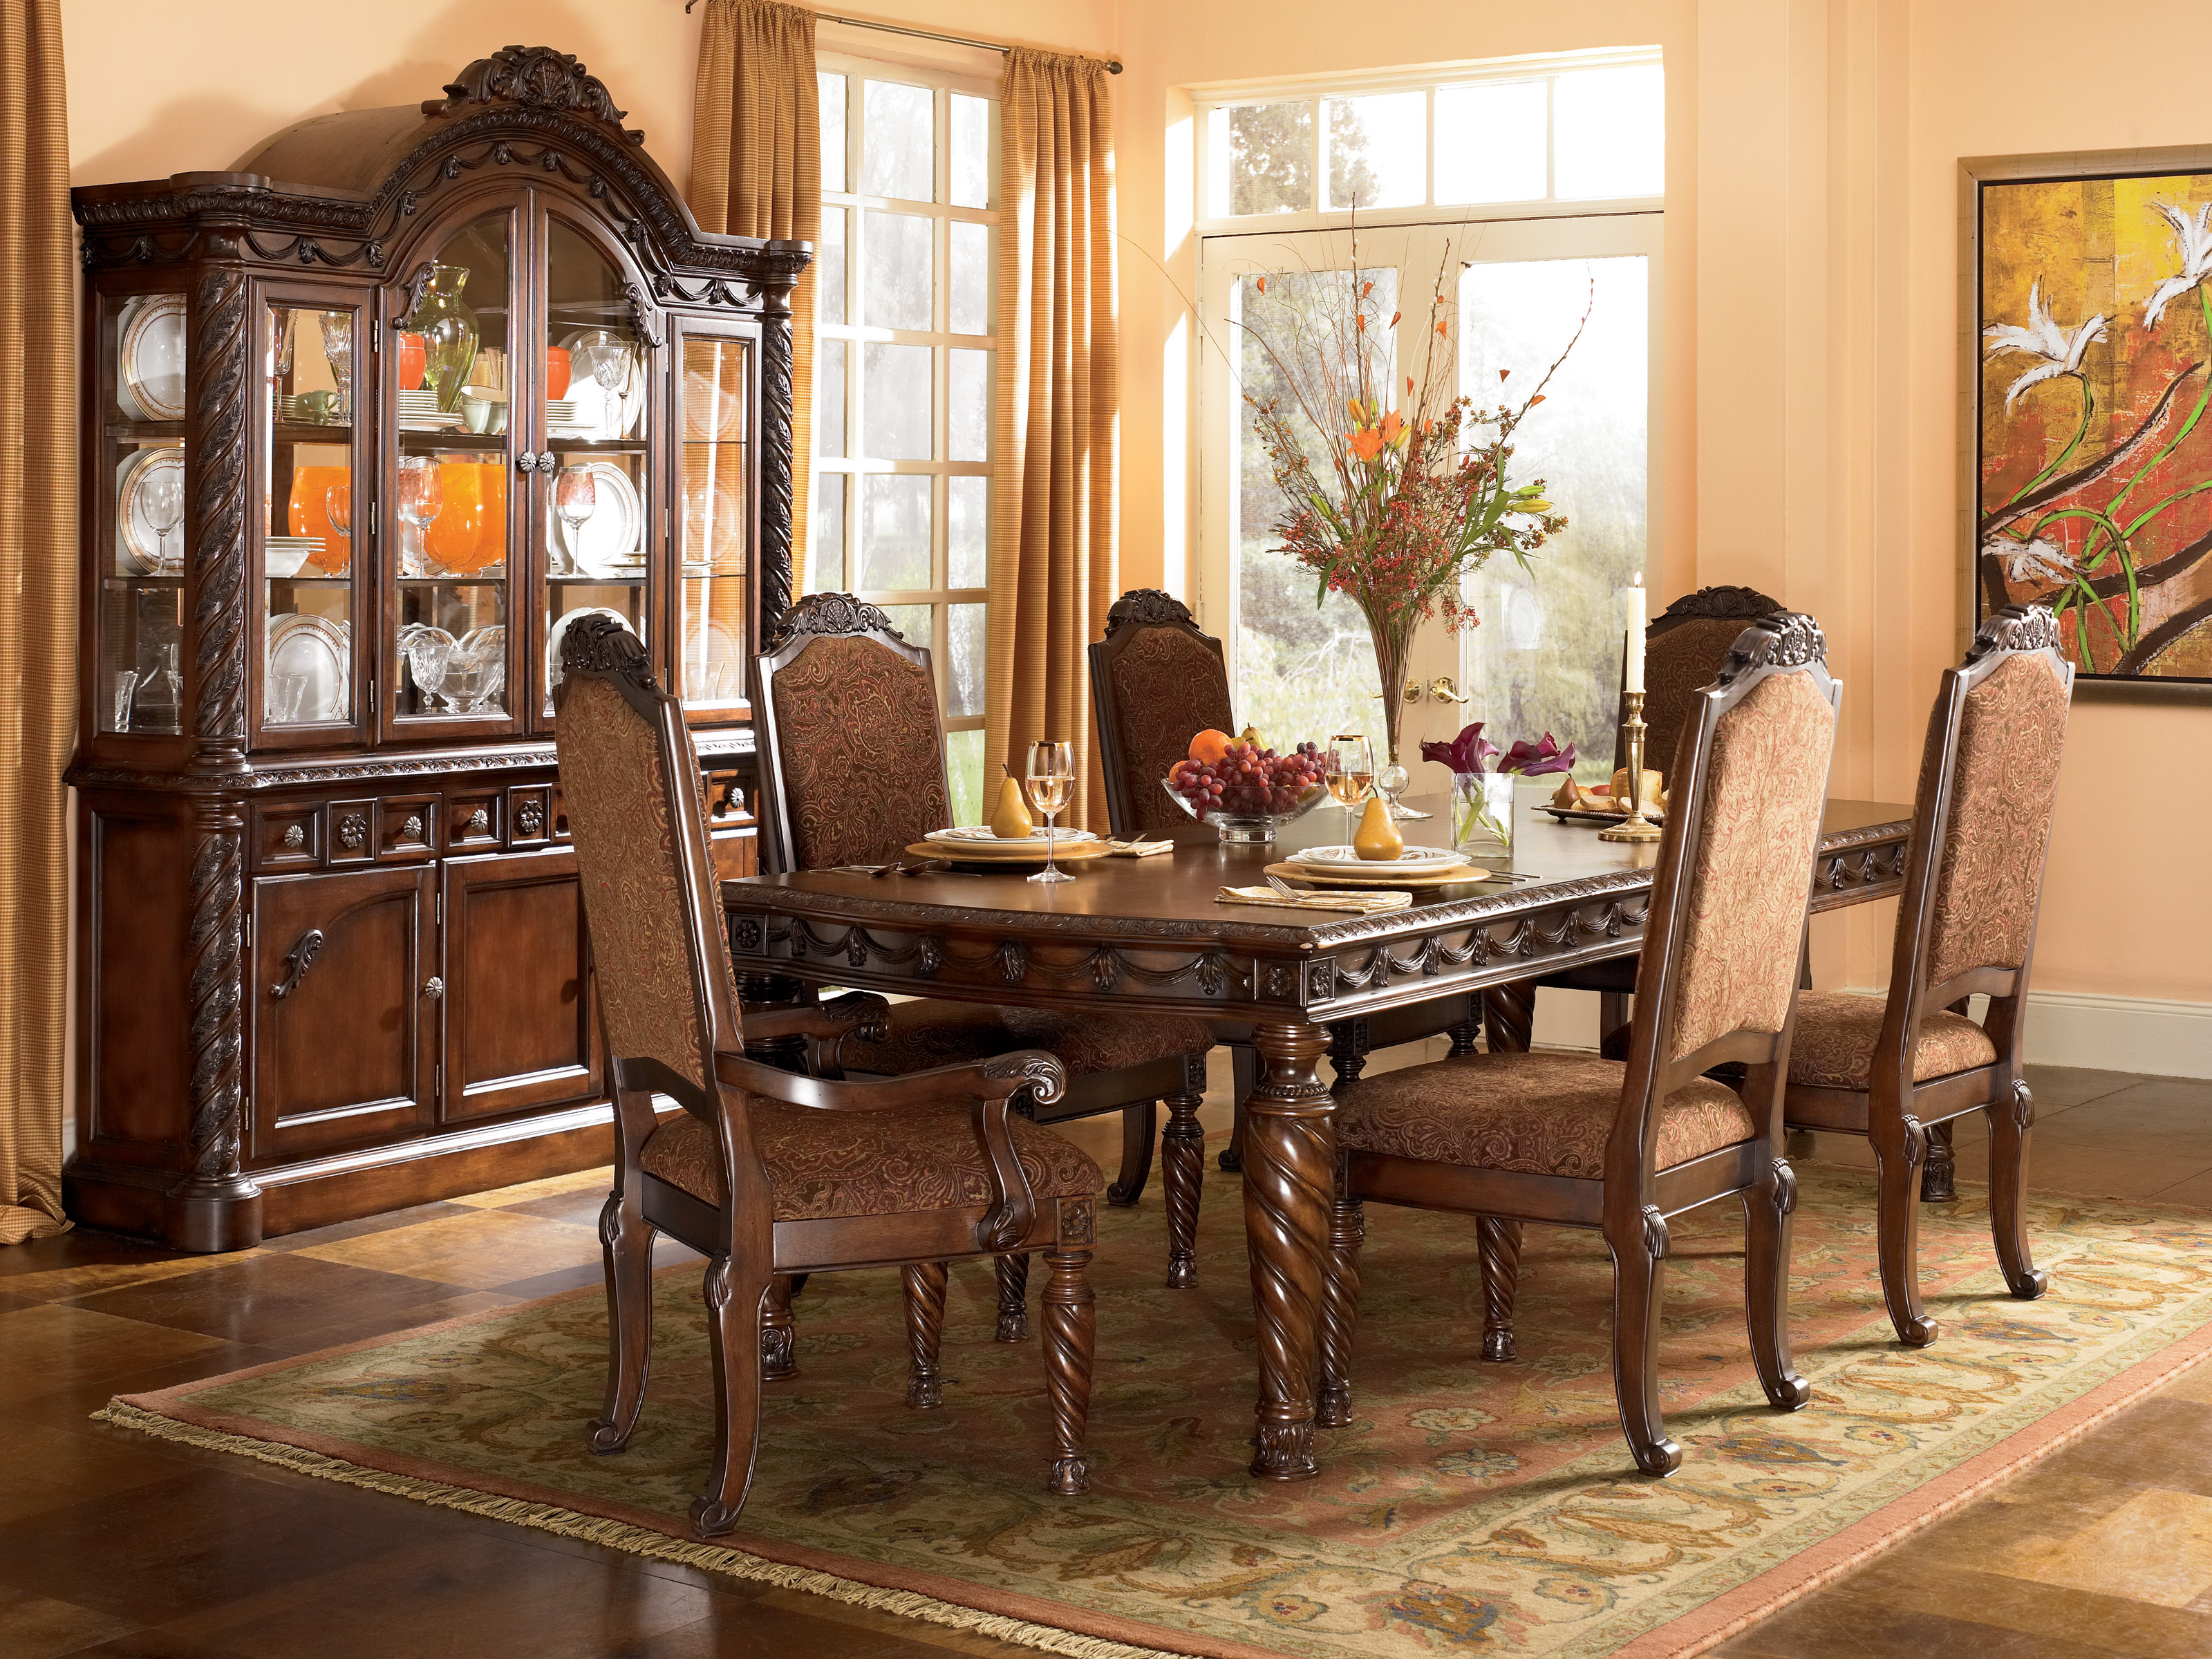 lindsey 39 s suite deals furniture announces holiday sale on dining room